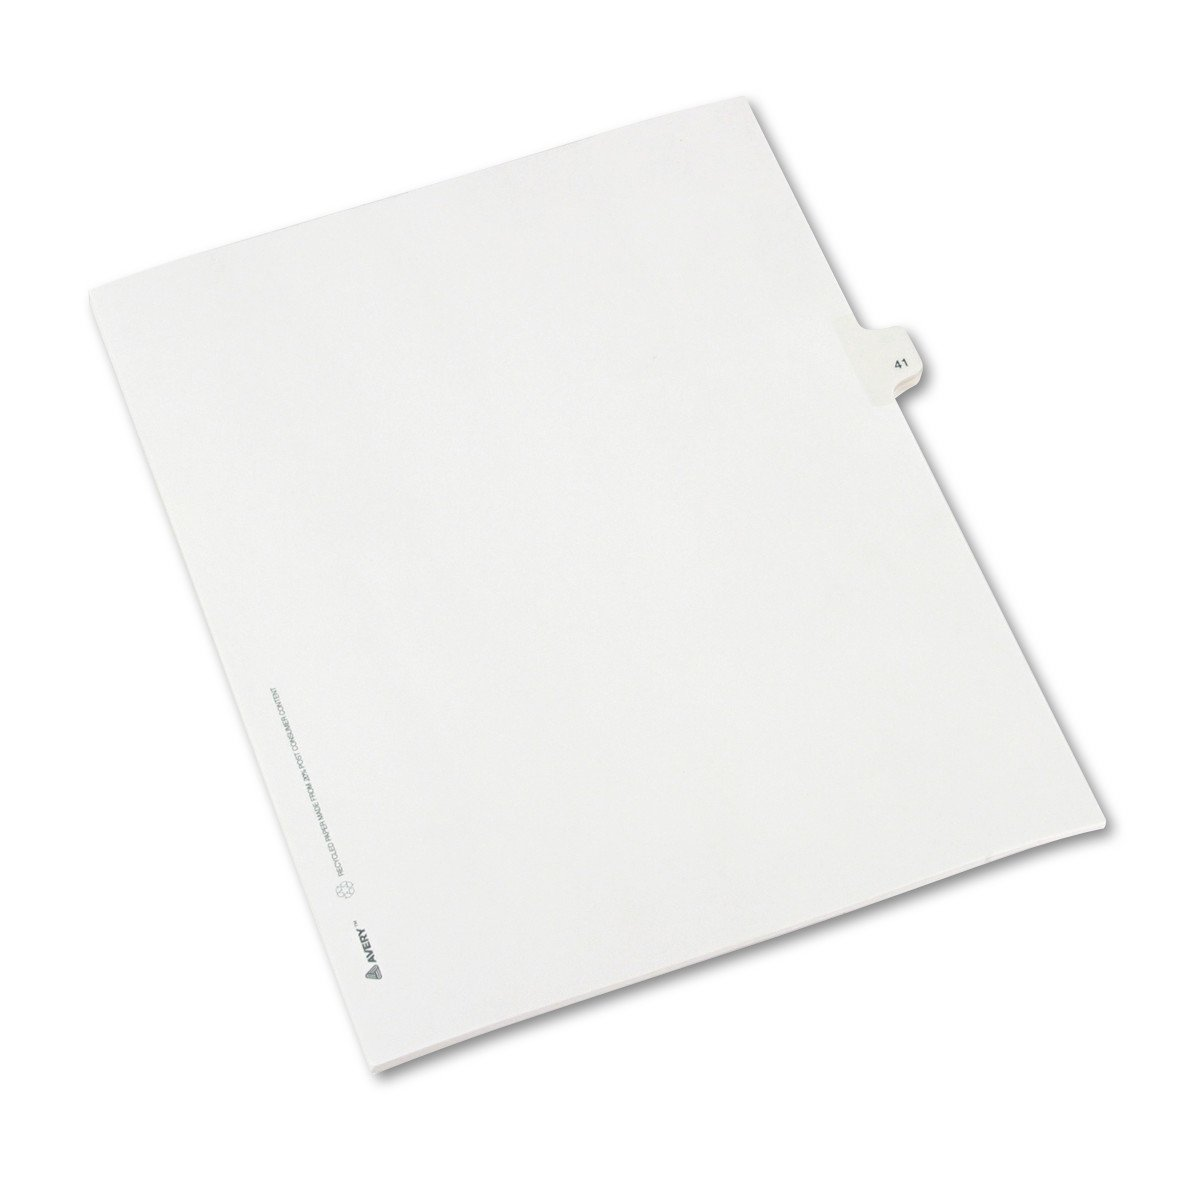 Avery Individual Legal Exhibit Dividers, Allstate Style, 41, Side Tab, 8.5 x 11 inches, Pack of 25 (82239)